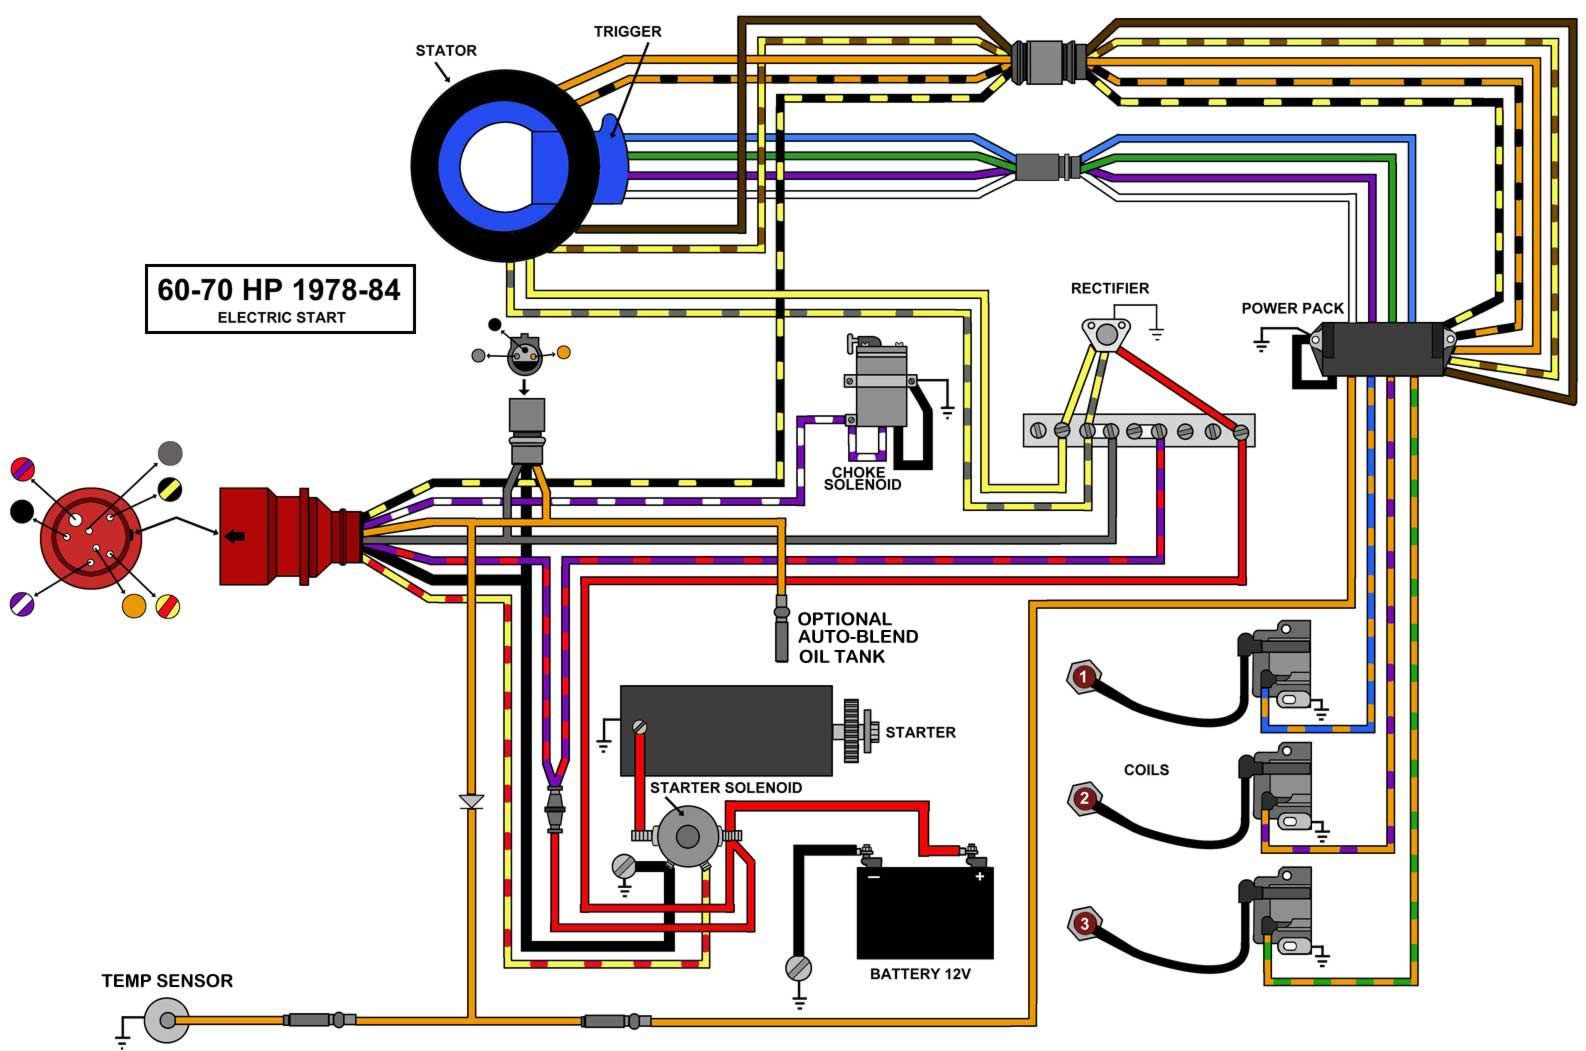 image result for 70 hp johnson 1988 wiring to tachometer etc diagram johnson controls lube oil control wiring diagram johnson control wiring diagram [ 1586 x 1051 Pixel ]